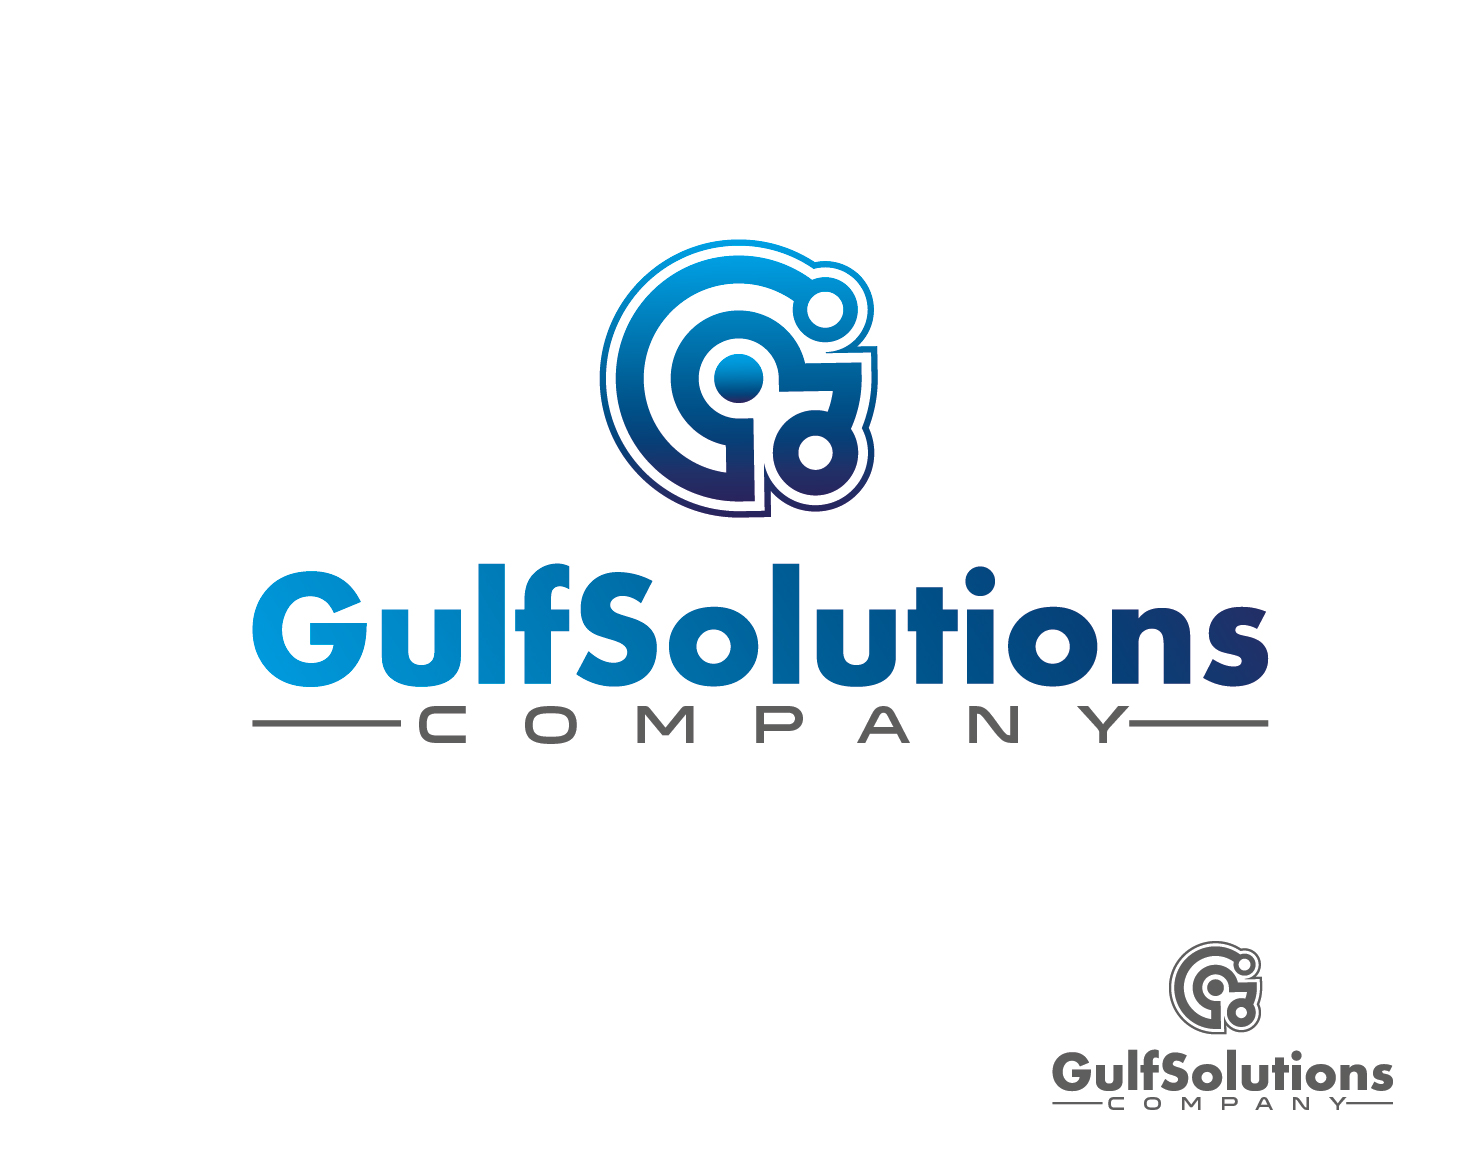 Logo Design by VENTSISLAV KOVACHEV - Entry No. 47 in the Logo Design Contest New Logo Design for Gulf solutions company.